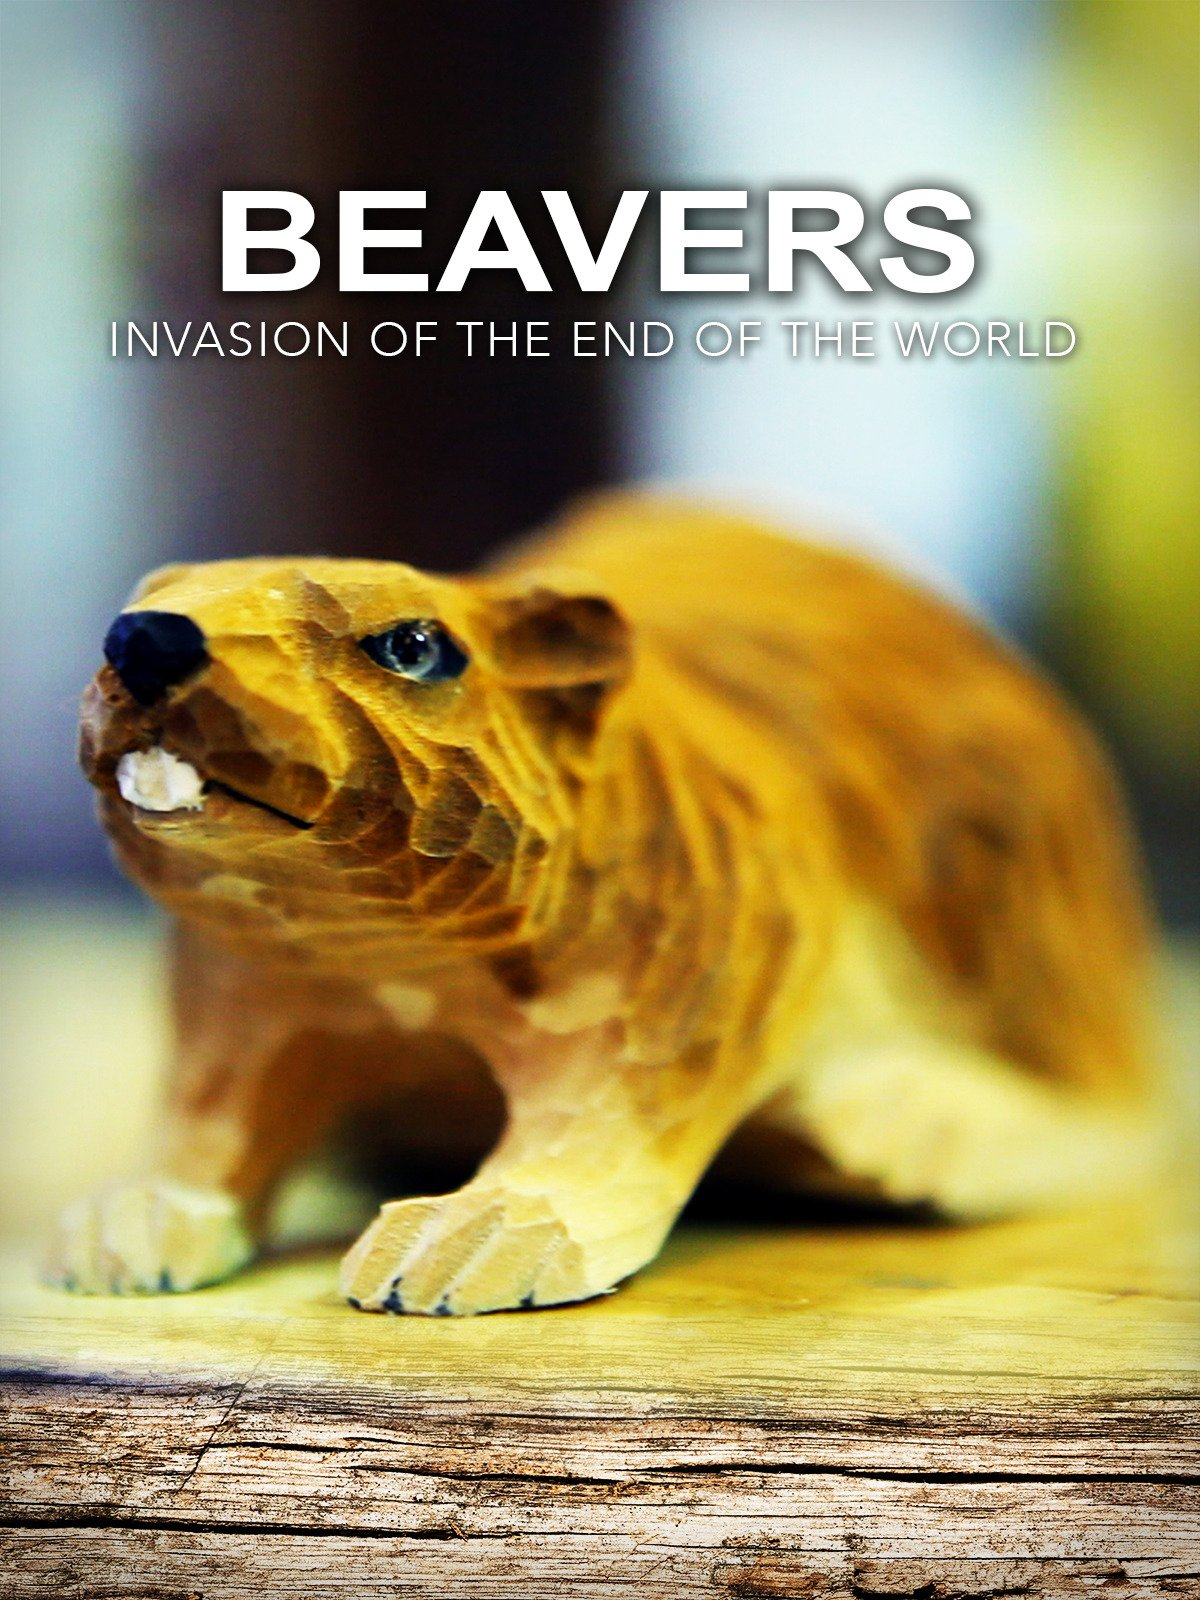 Beavers: Invasion of the End of the World